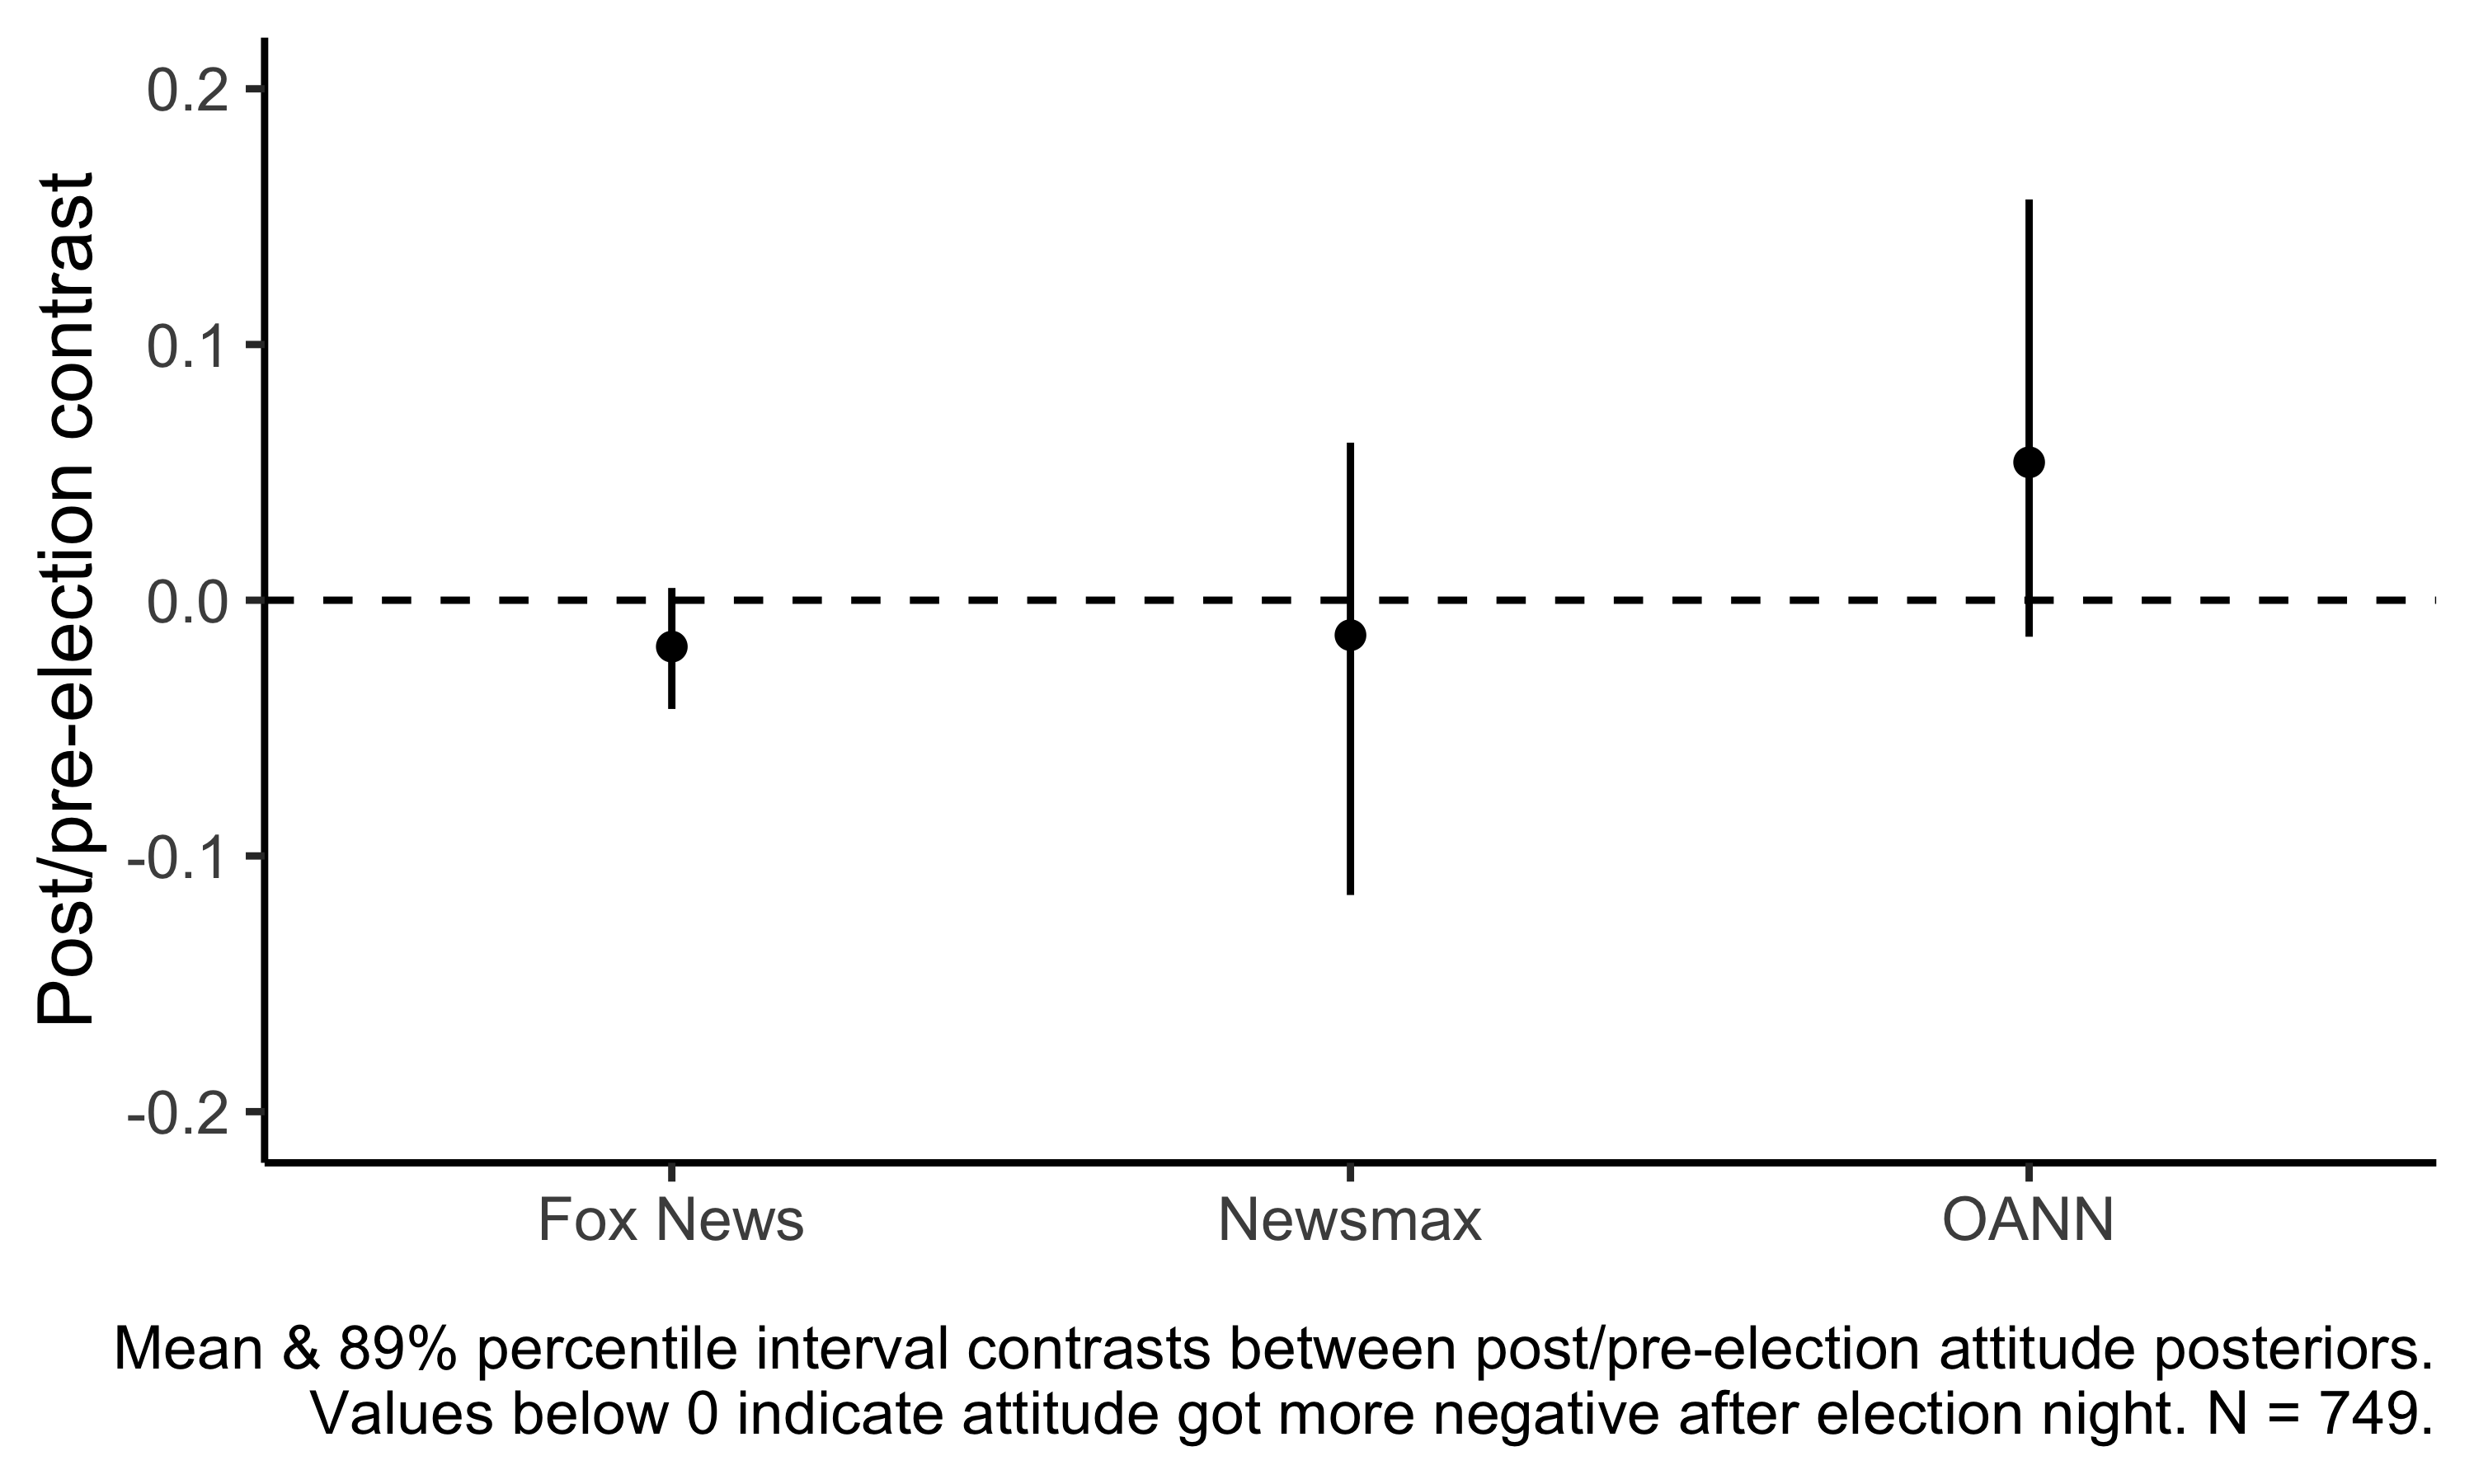 Mean & 89% percentile interval contrasts between post/pre-election attitude posteriors.